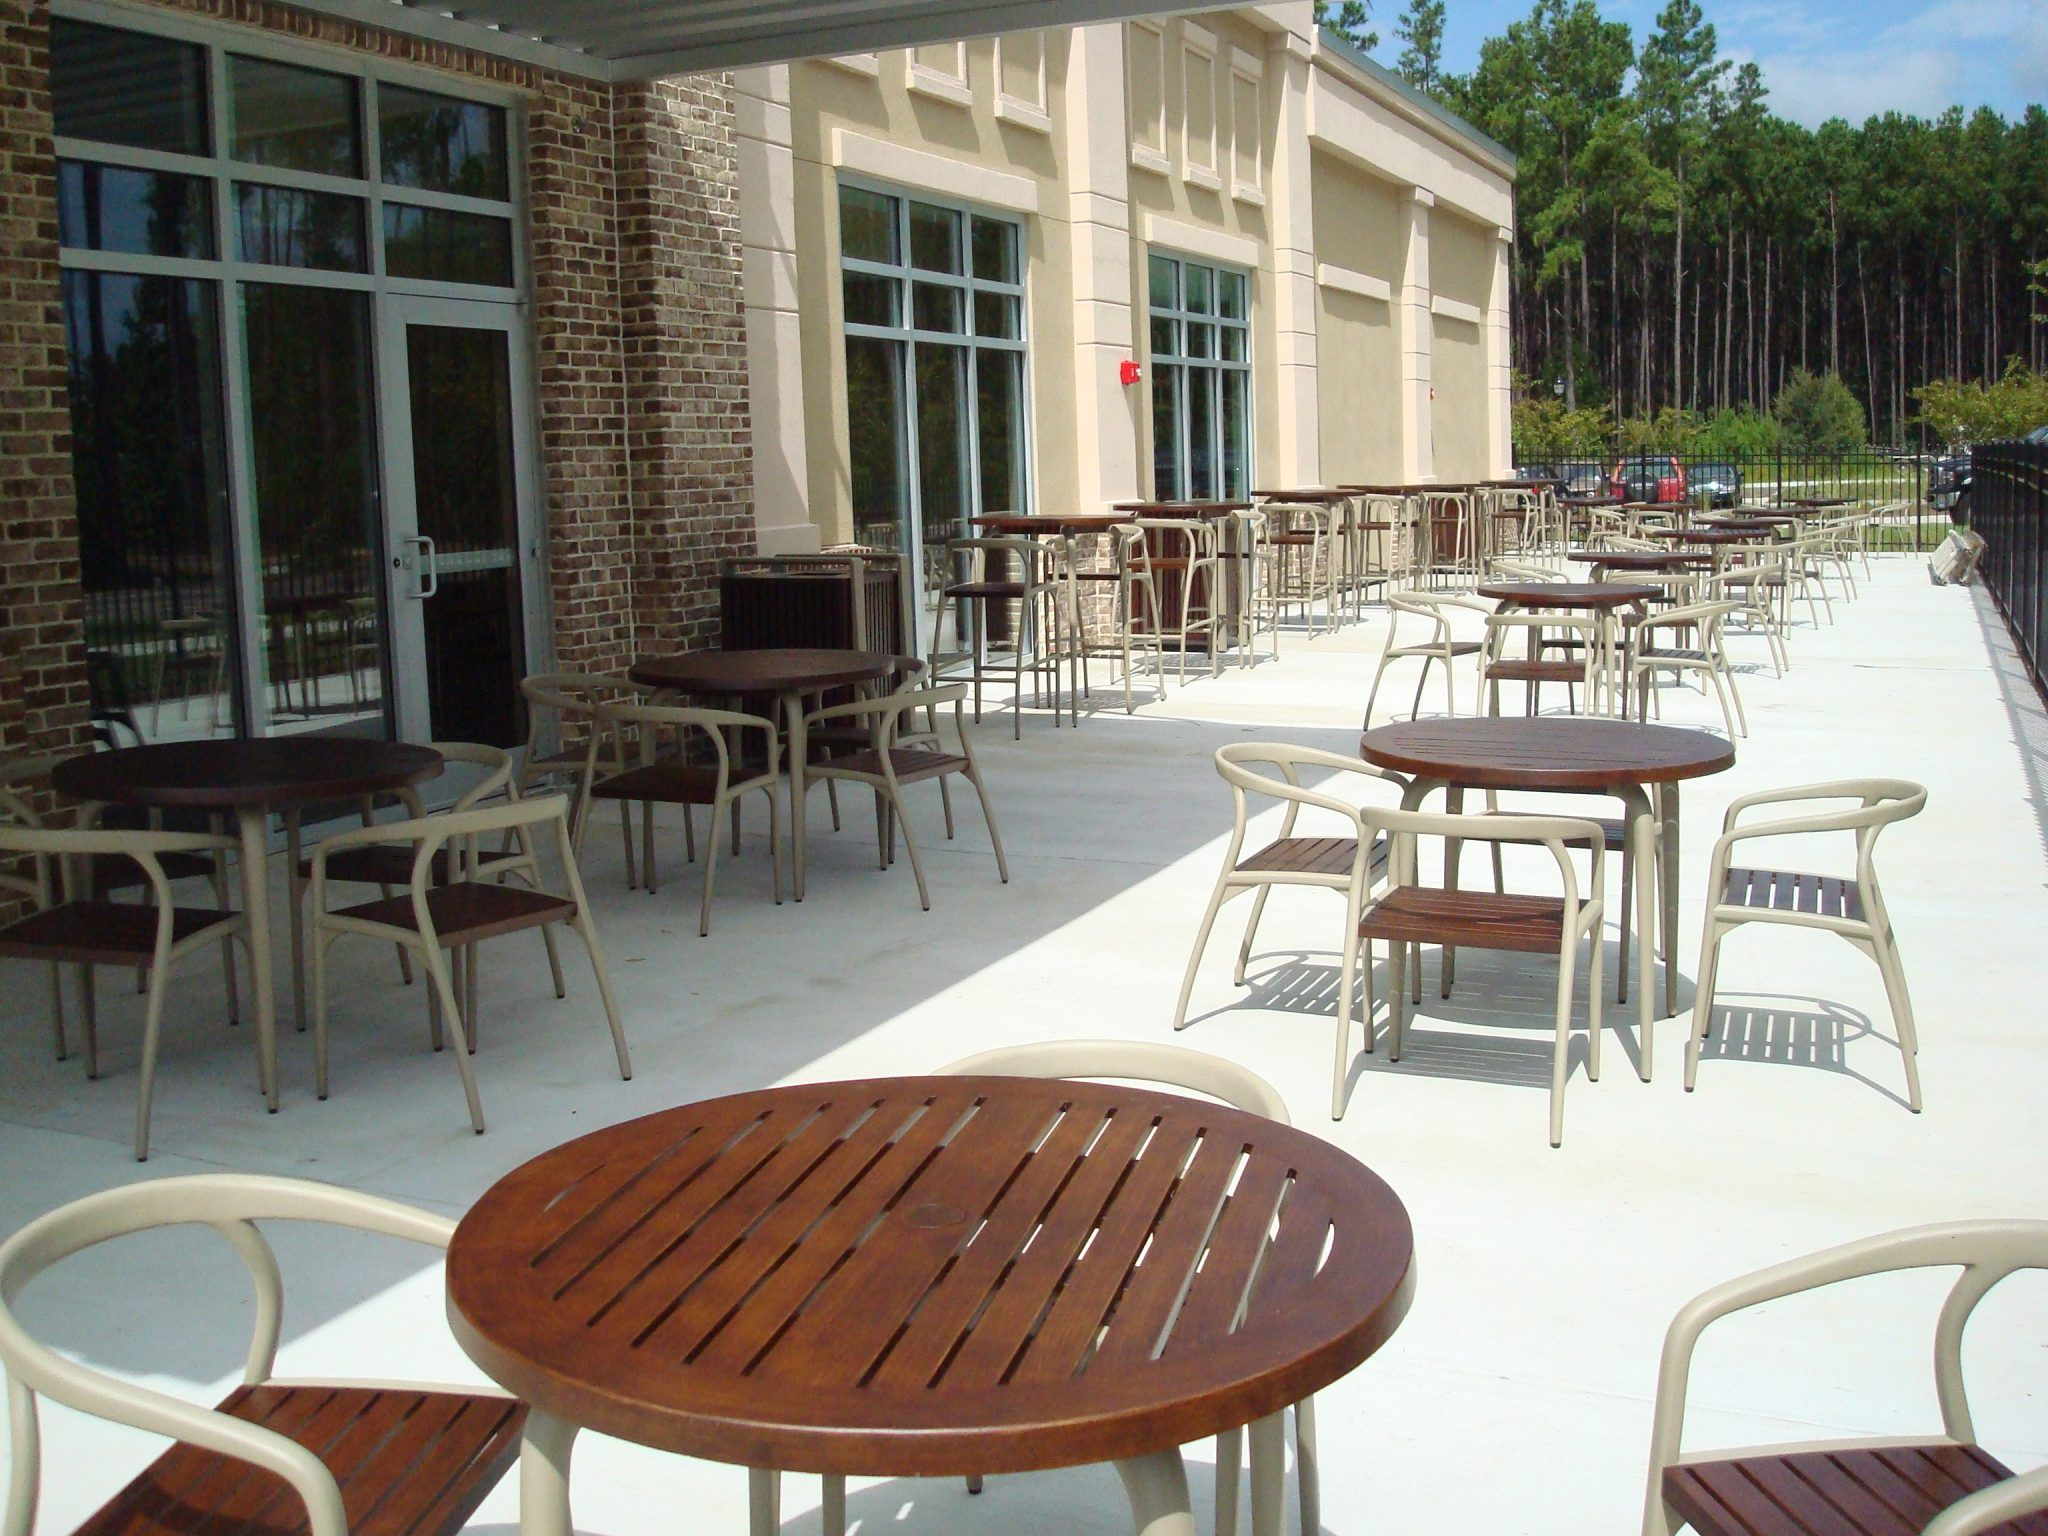 Rows of outdoor dining sets on a patio